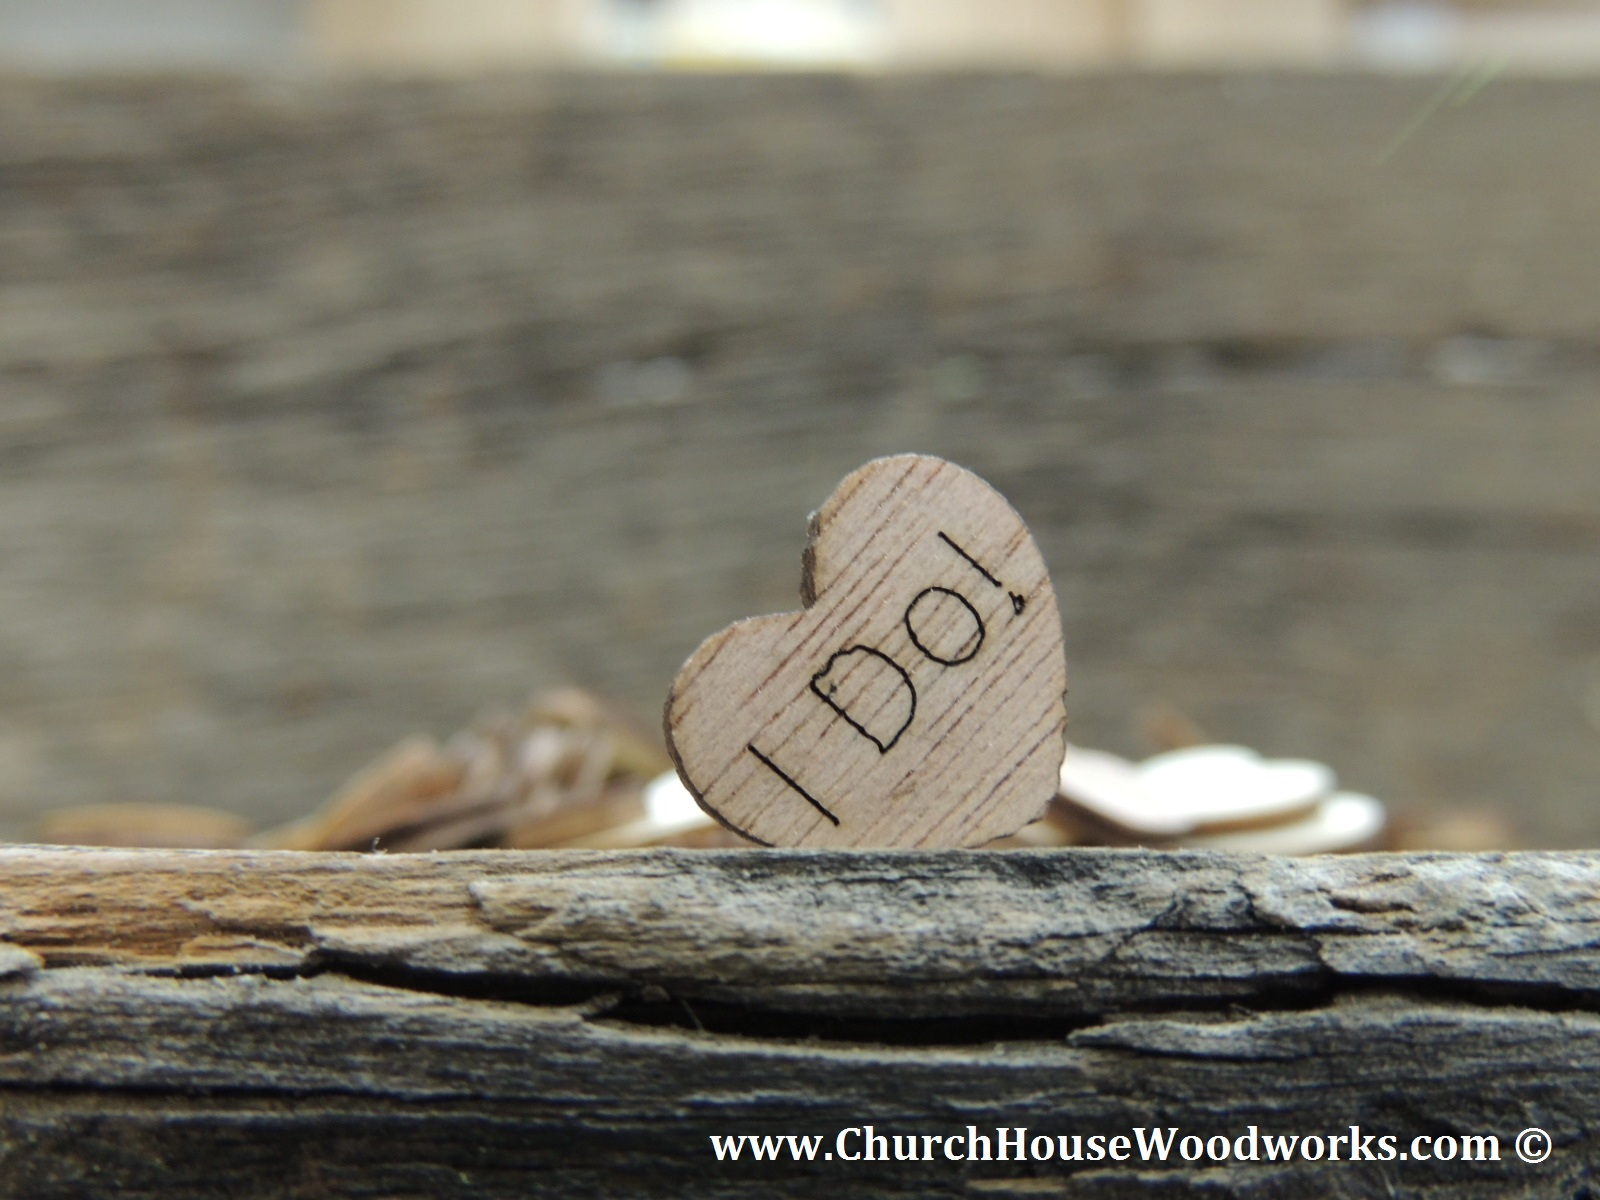 I Do Rustic Wedding Heart Wood Confetti Table Decorations For Bridal Showers Or Weddings Barn Country Farm